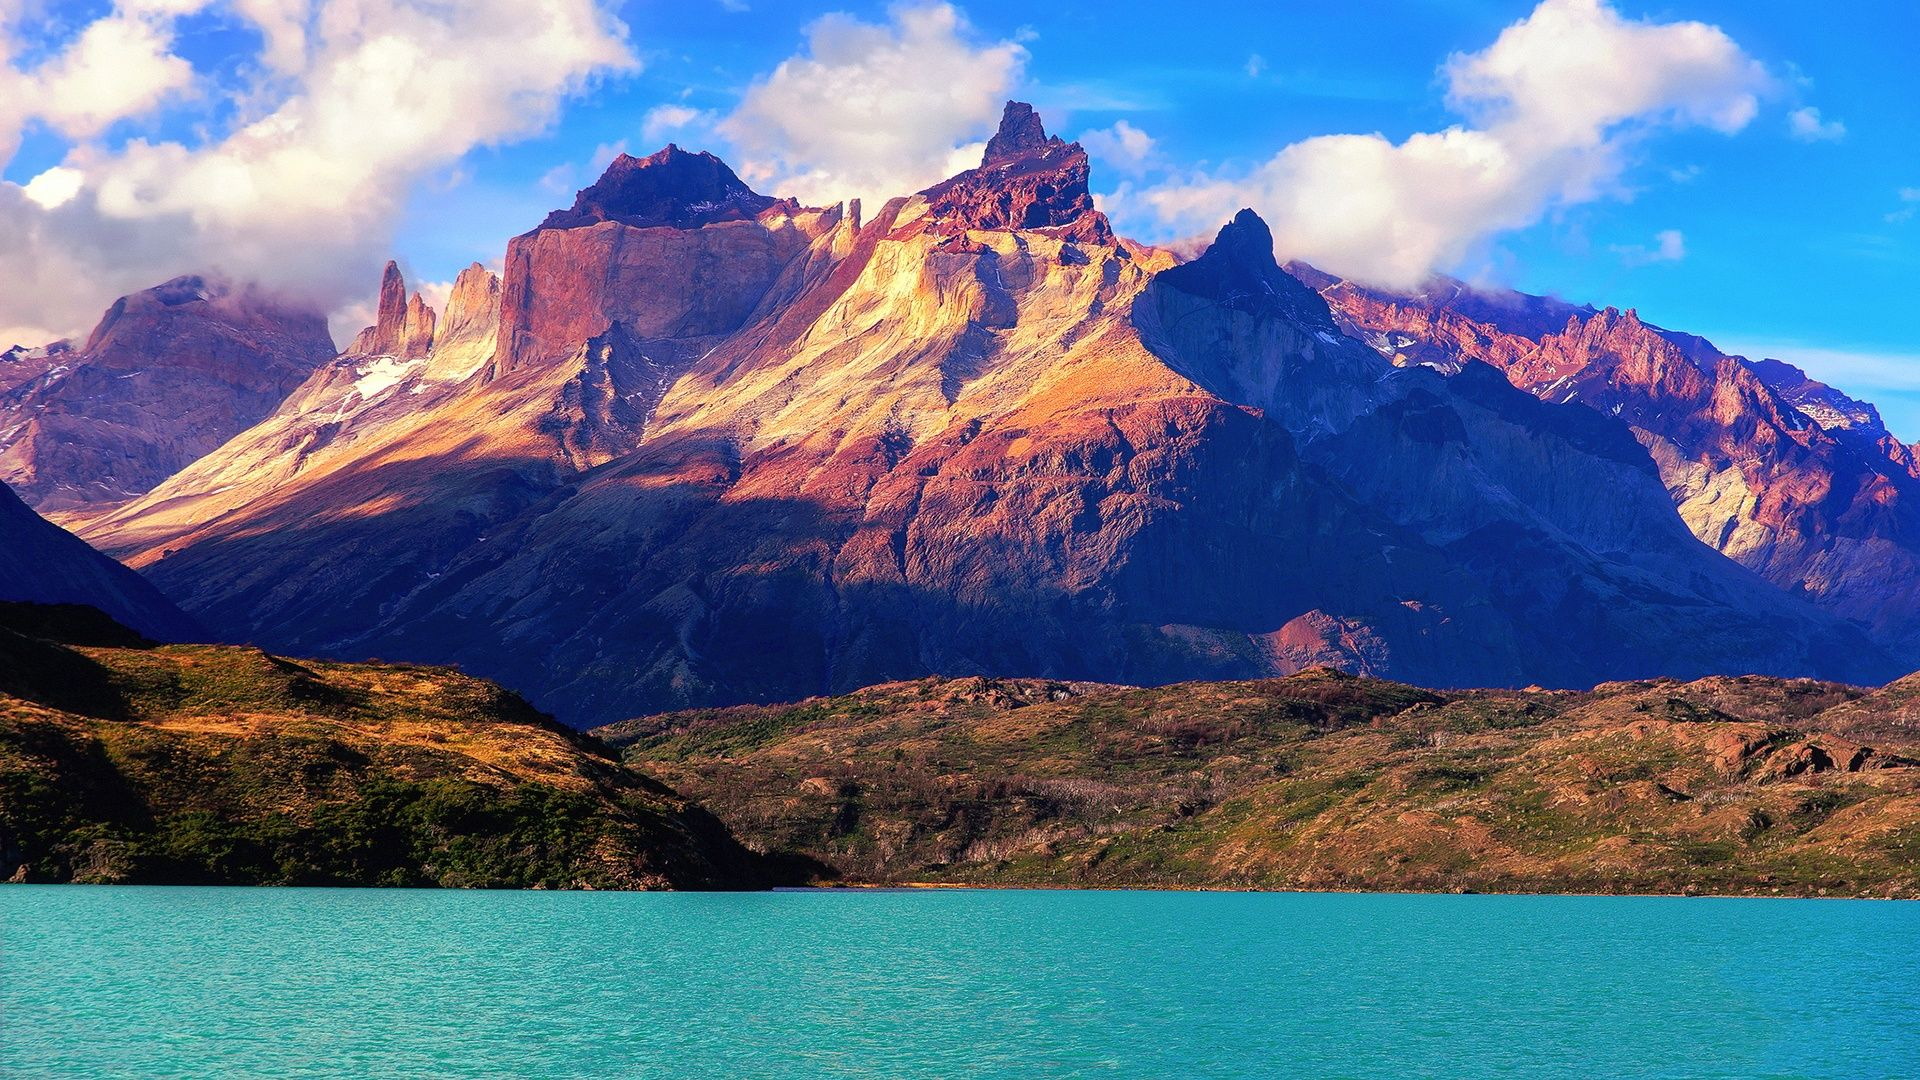 salt lake in chile wallpaper background free images hd